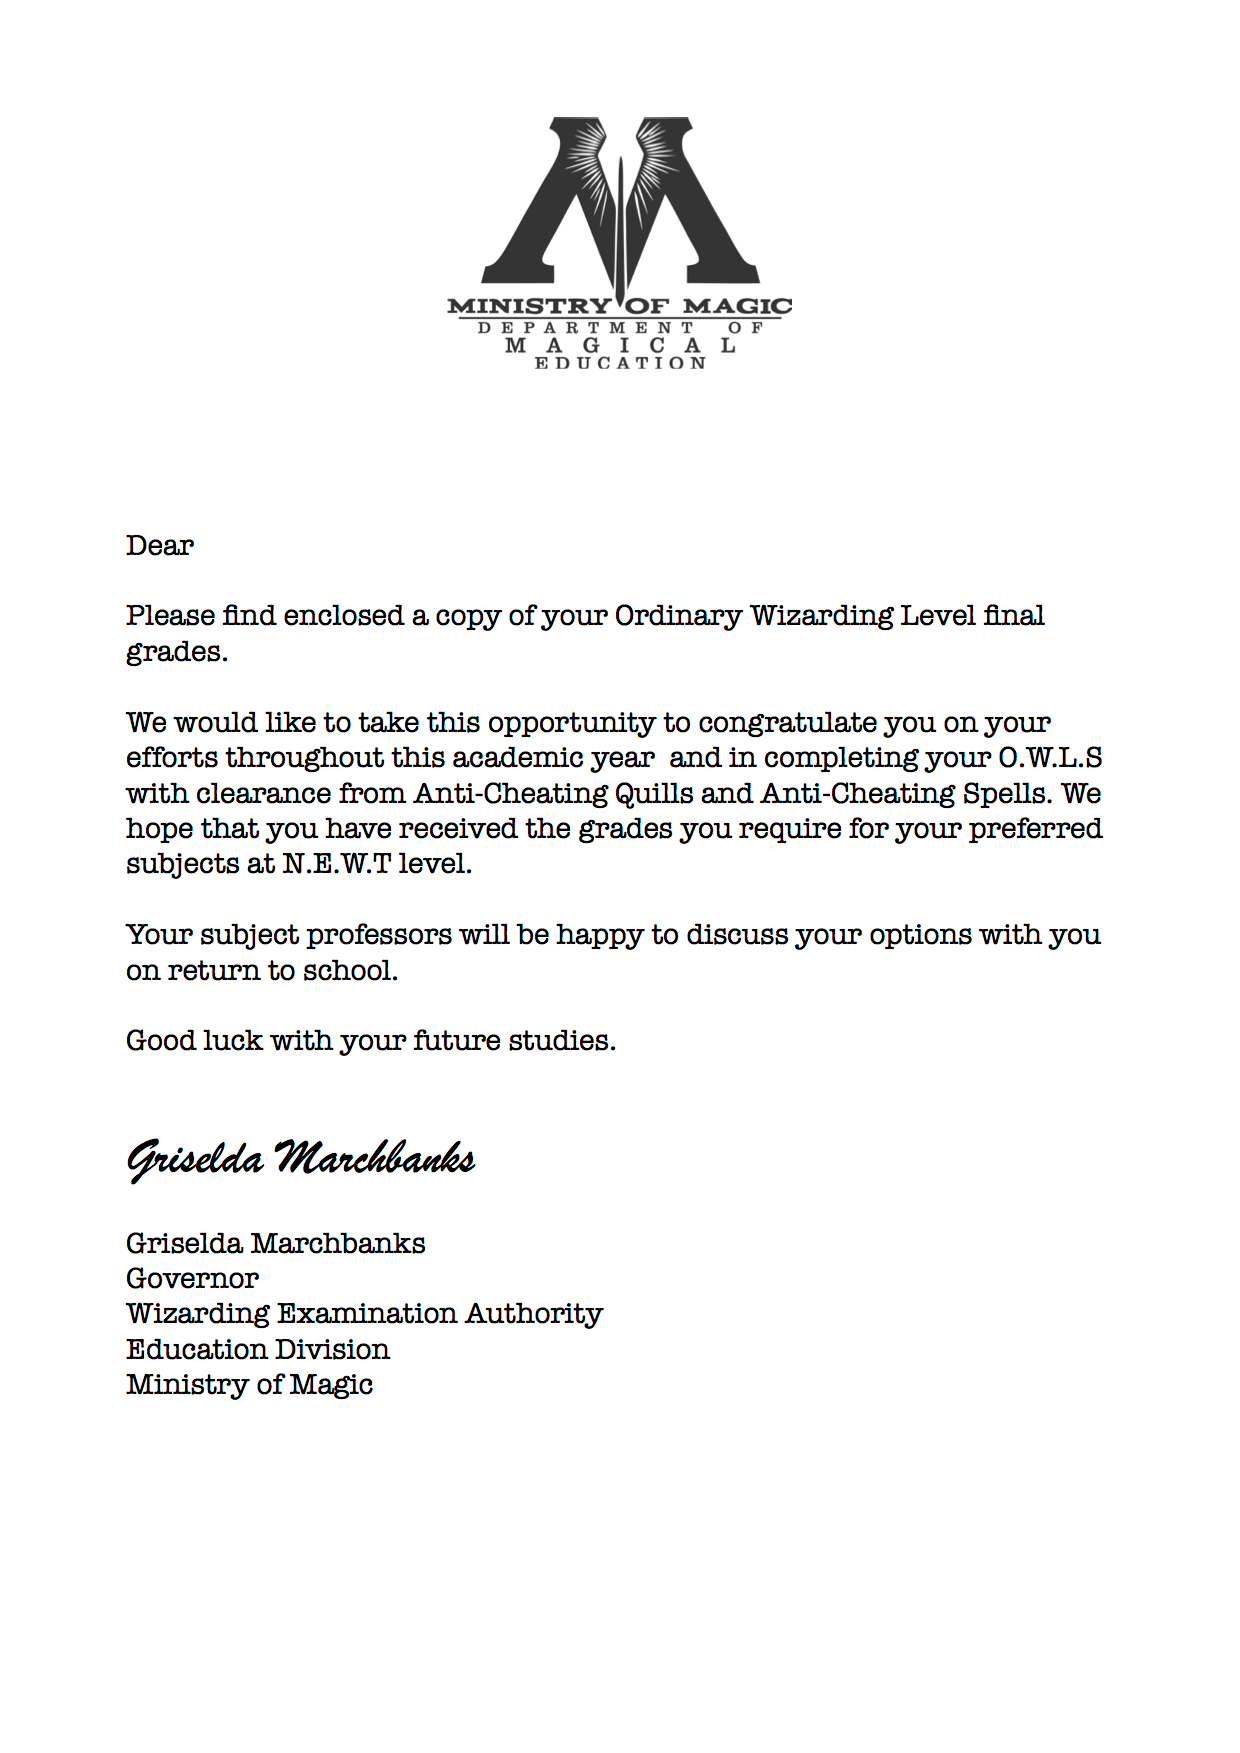 Harry Potter Cover Letter Received With O W L Results